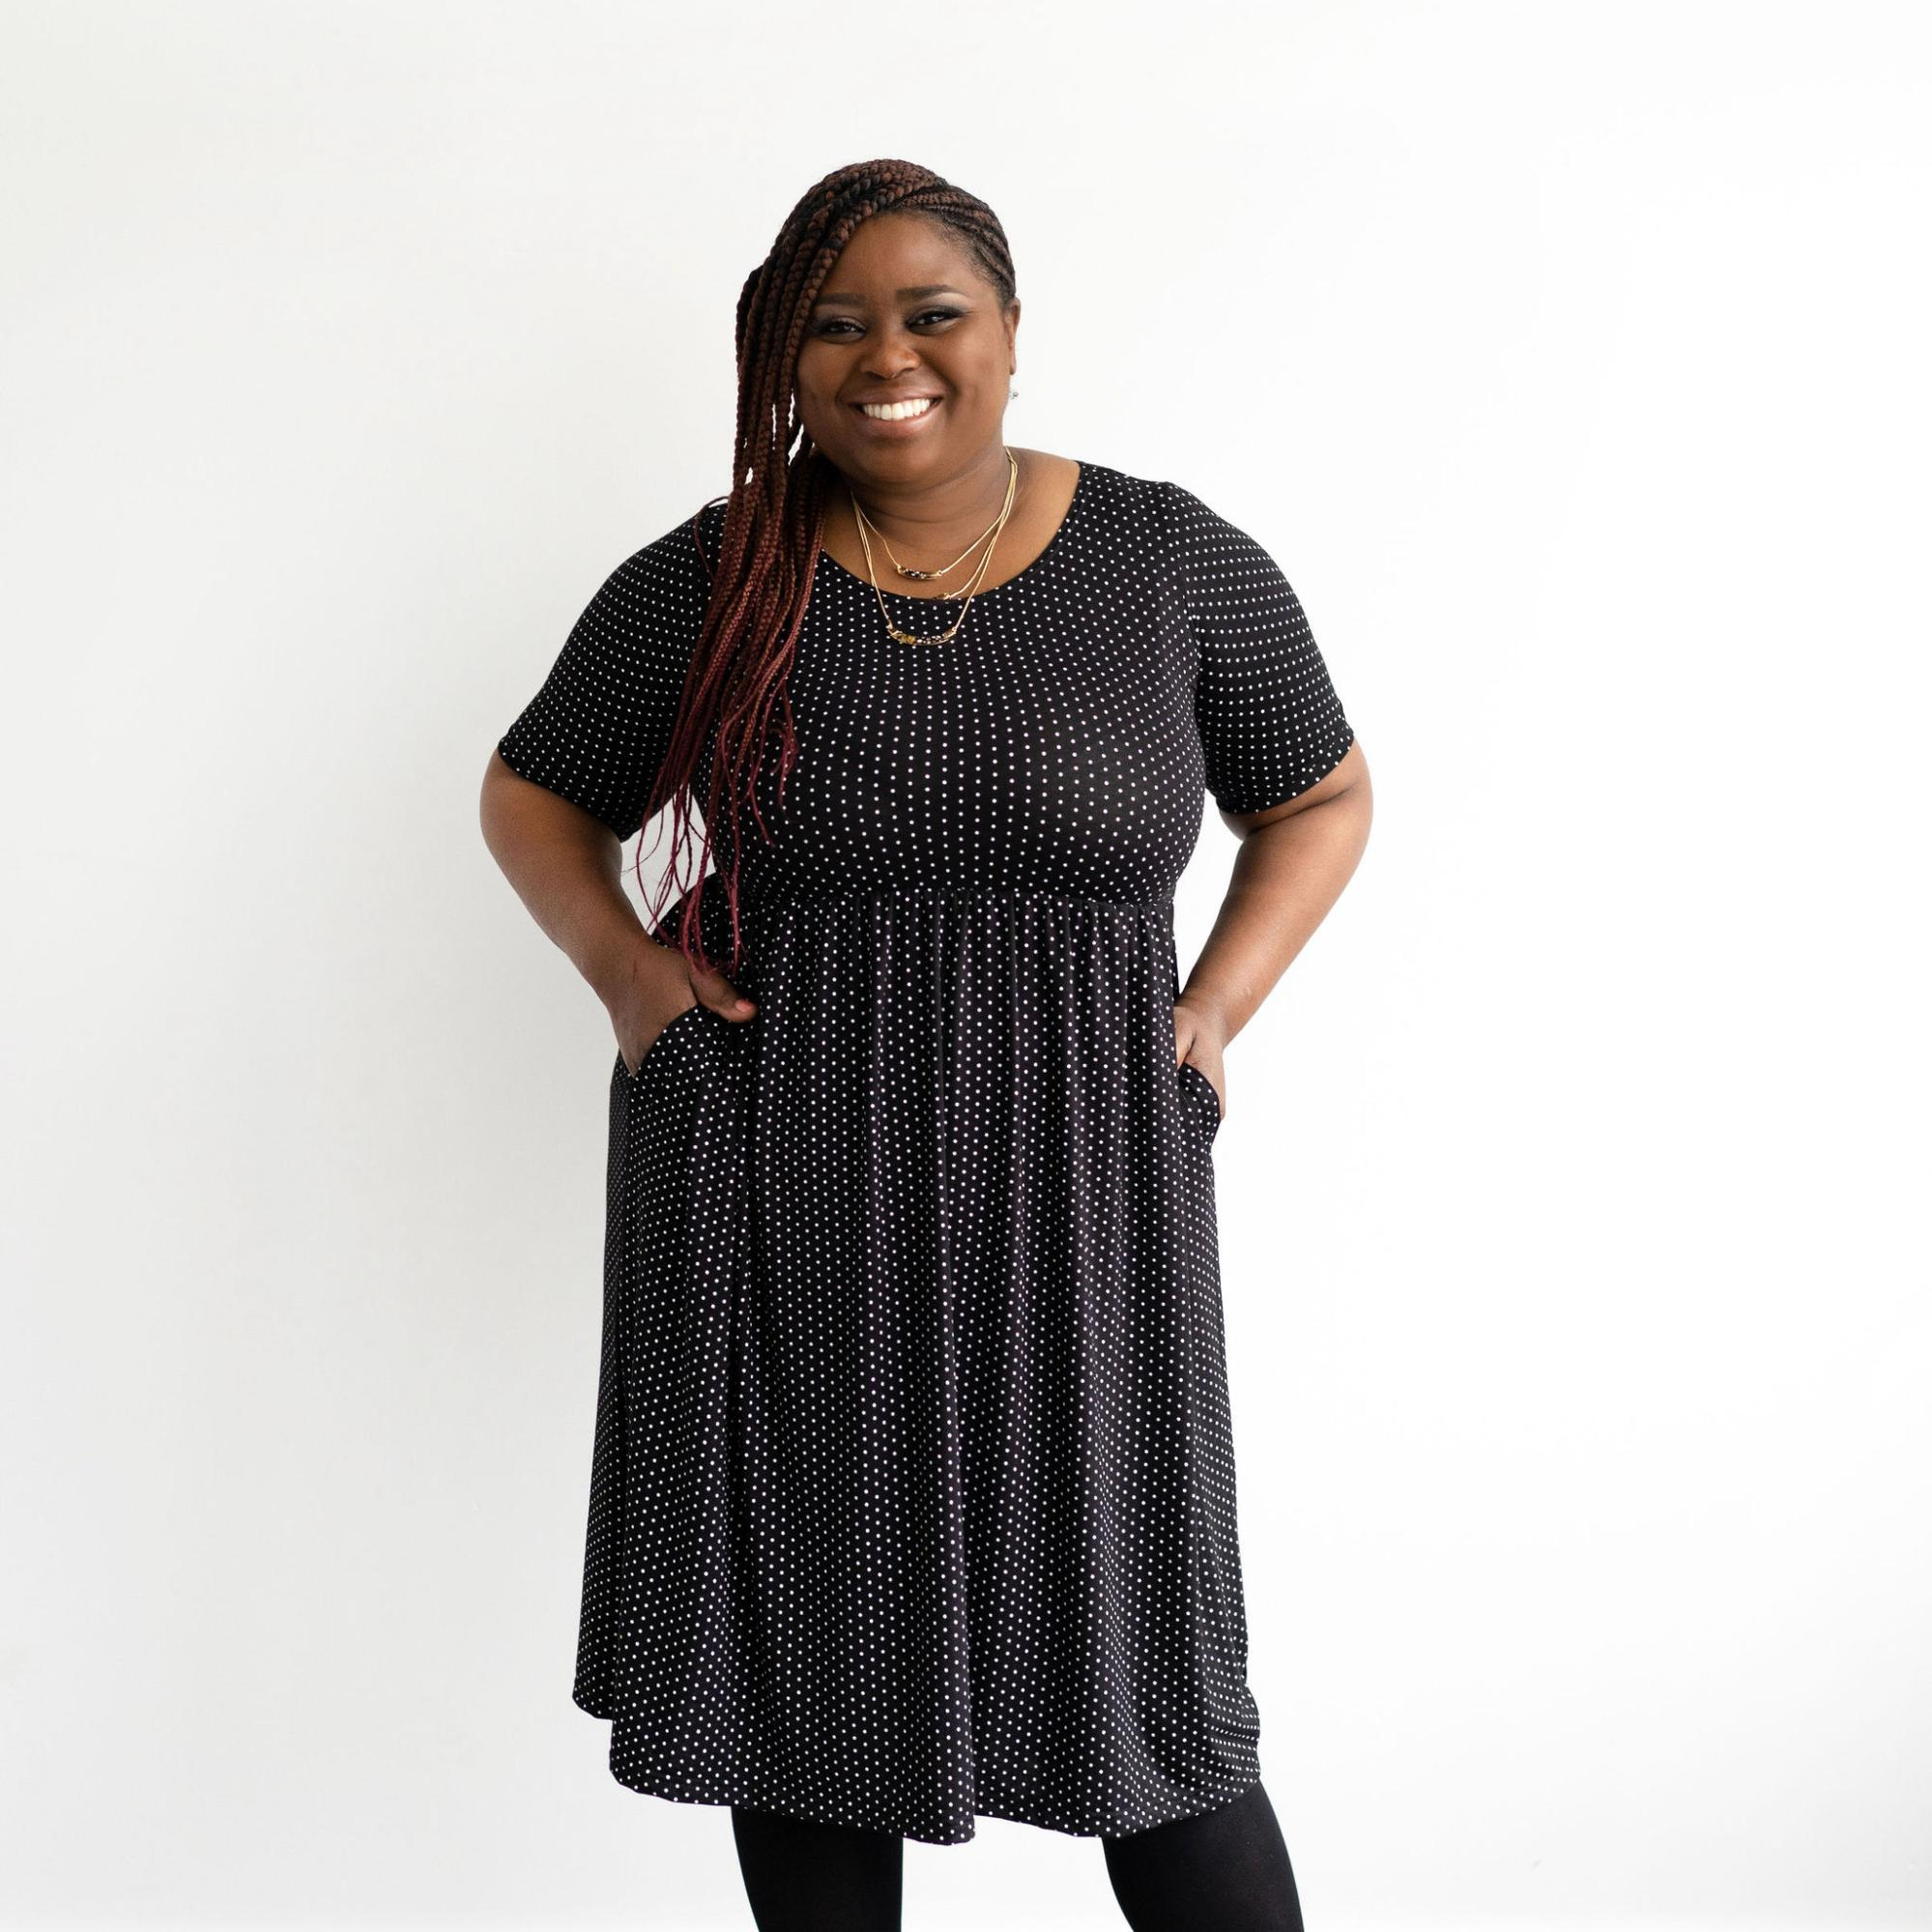 A model wearing a dress from Buttercream Clothing.